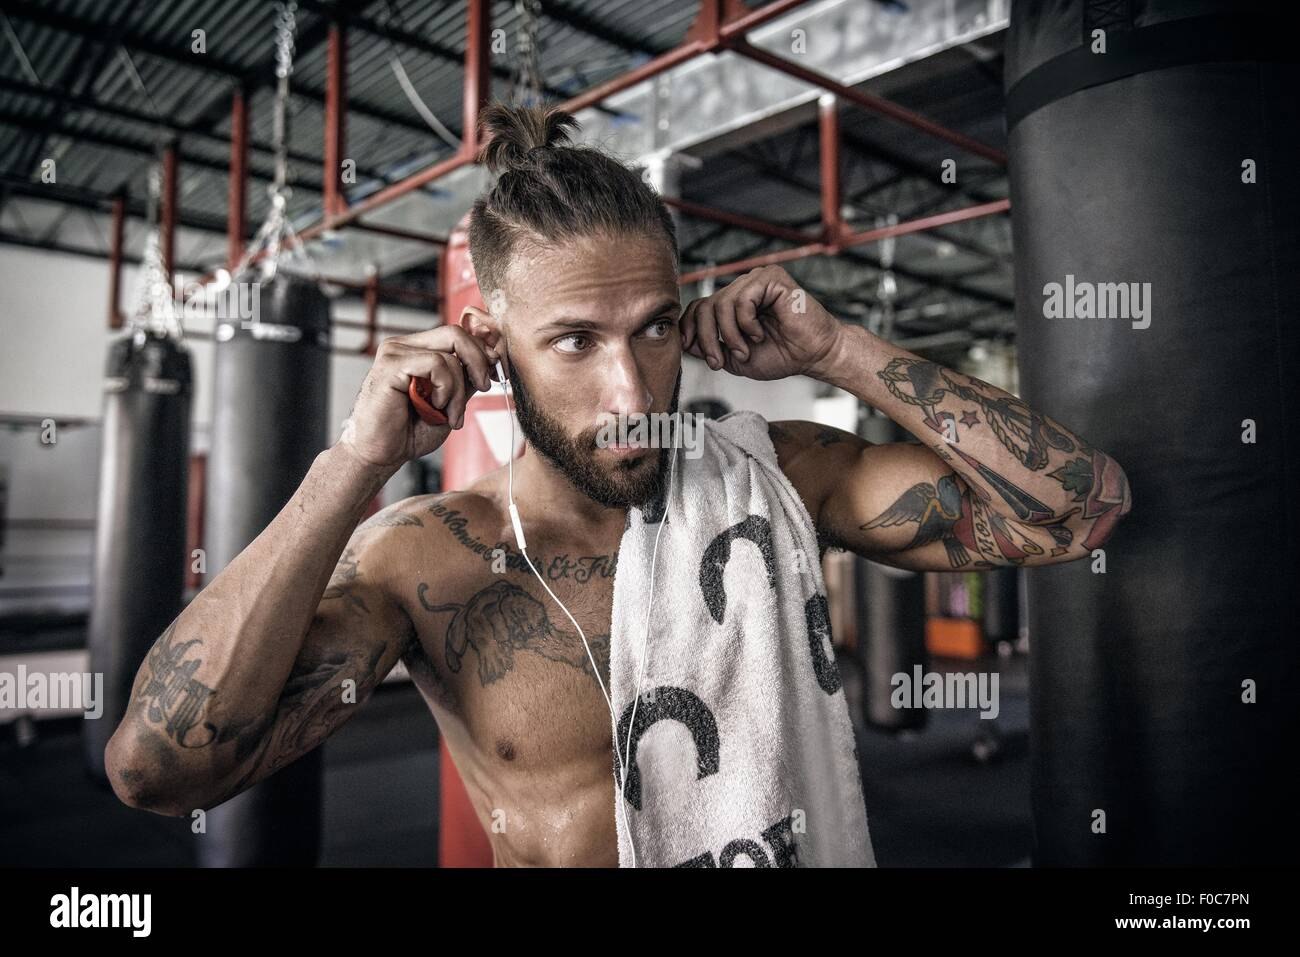 Male boxer putting in earphones at gym - Stock Image